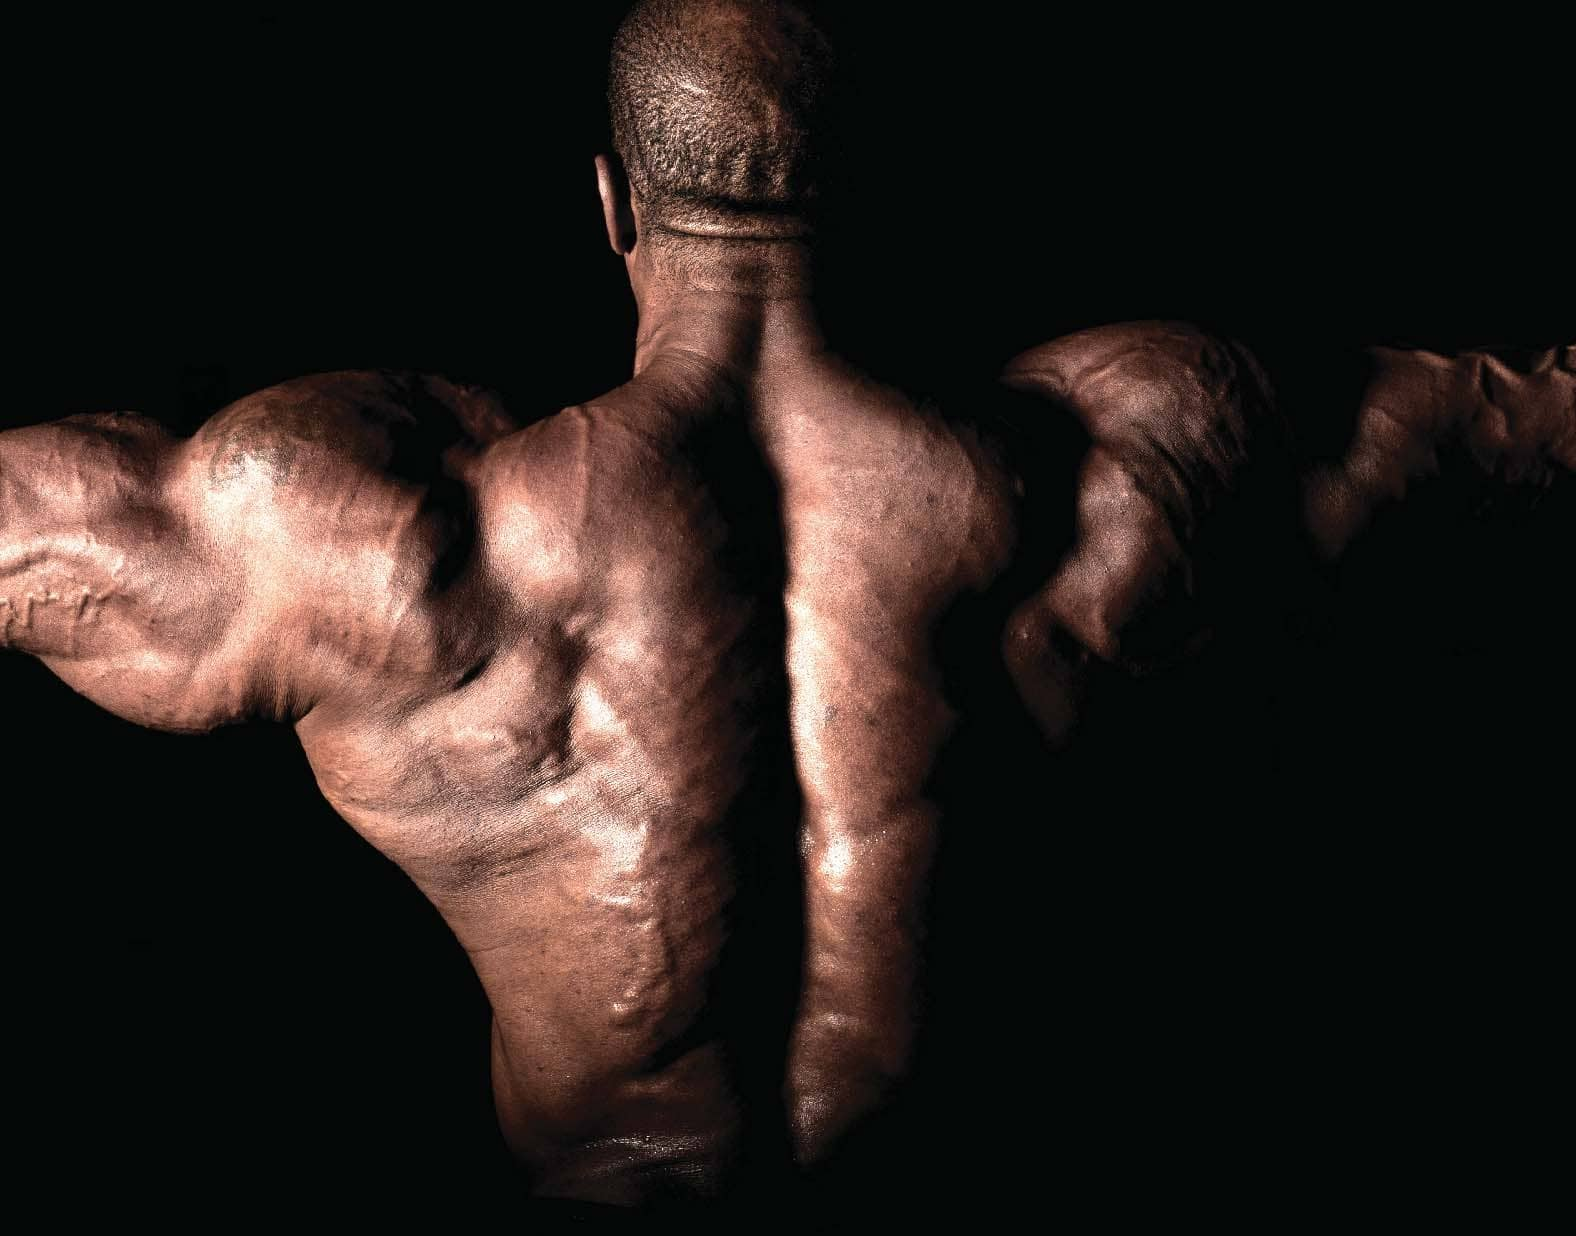 What's Good For Bodybuilding May Be Bad for Your Health